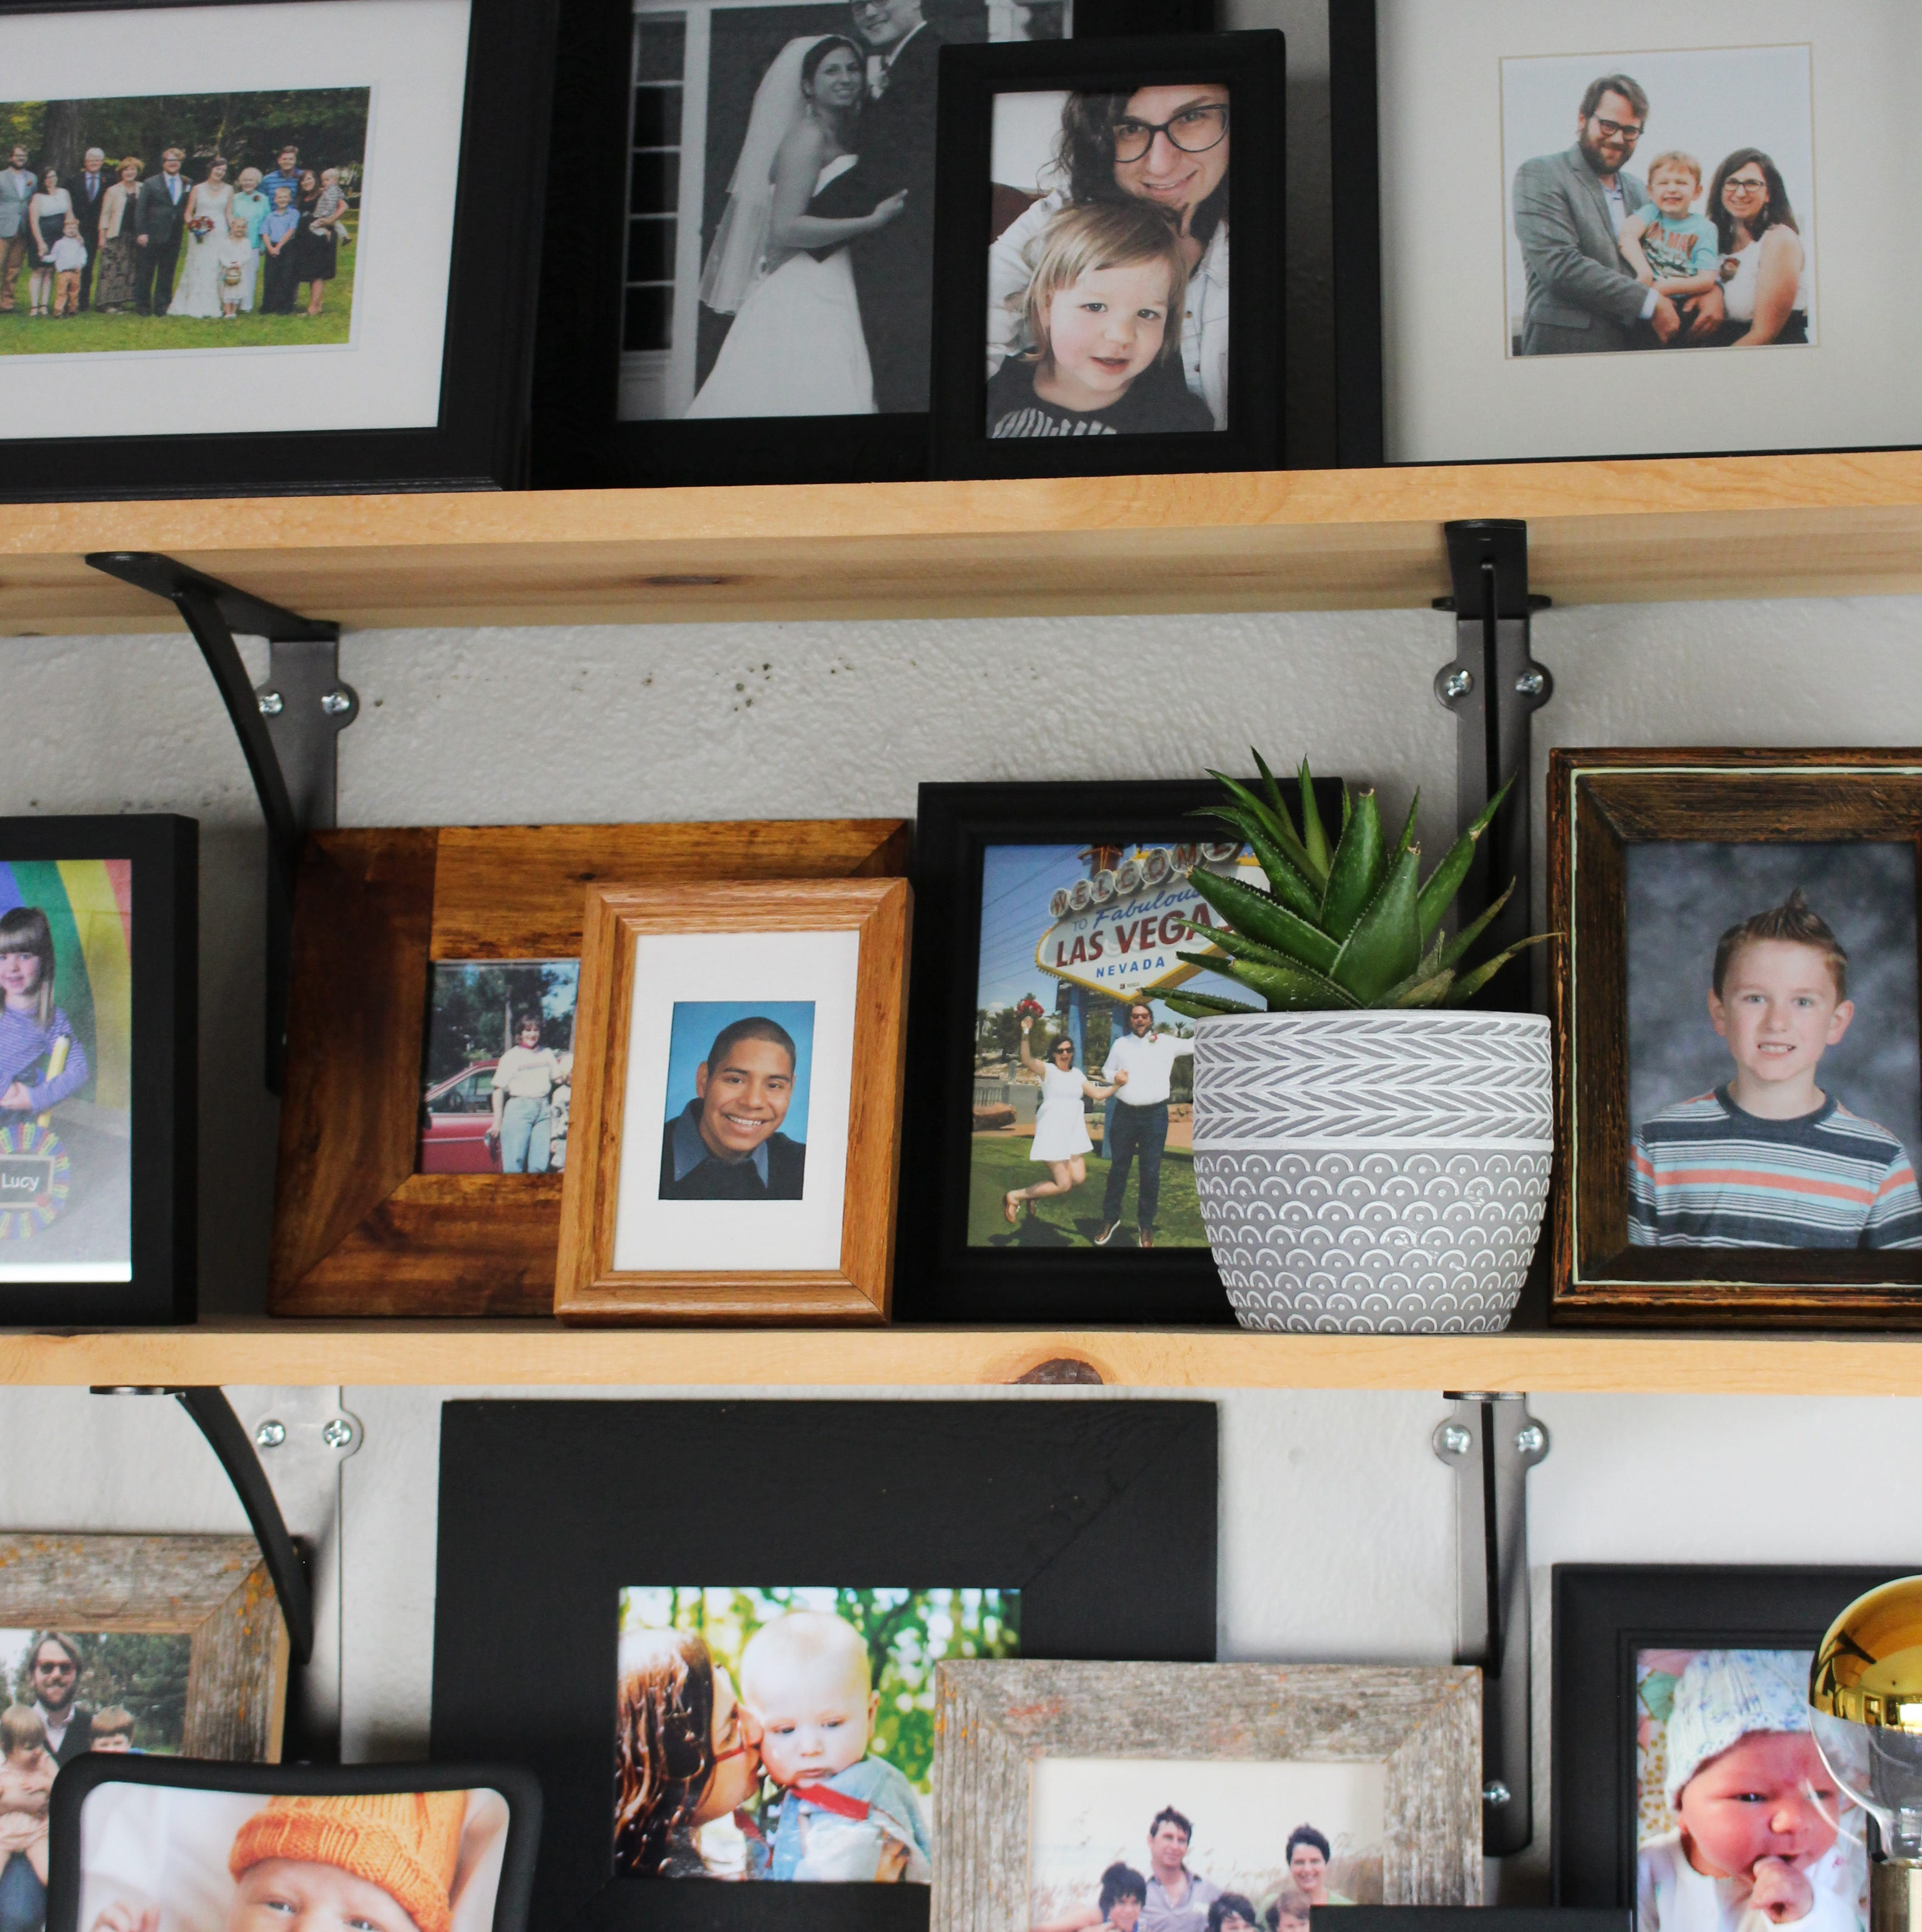 Photos abound. Here are some ideas for displaying them